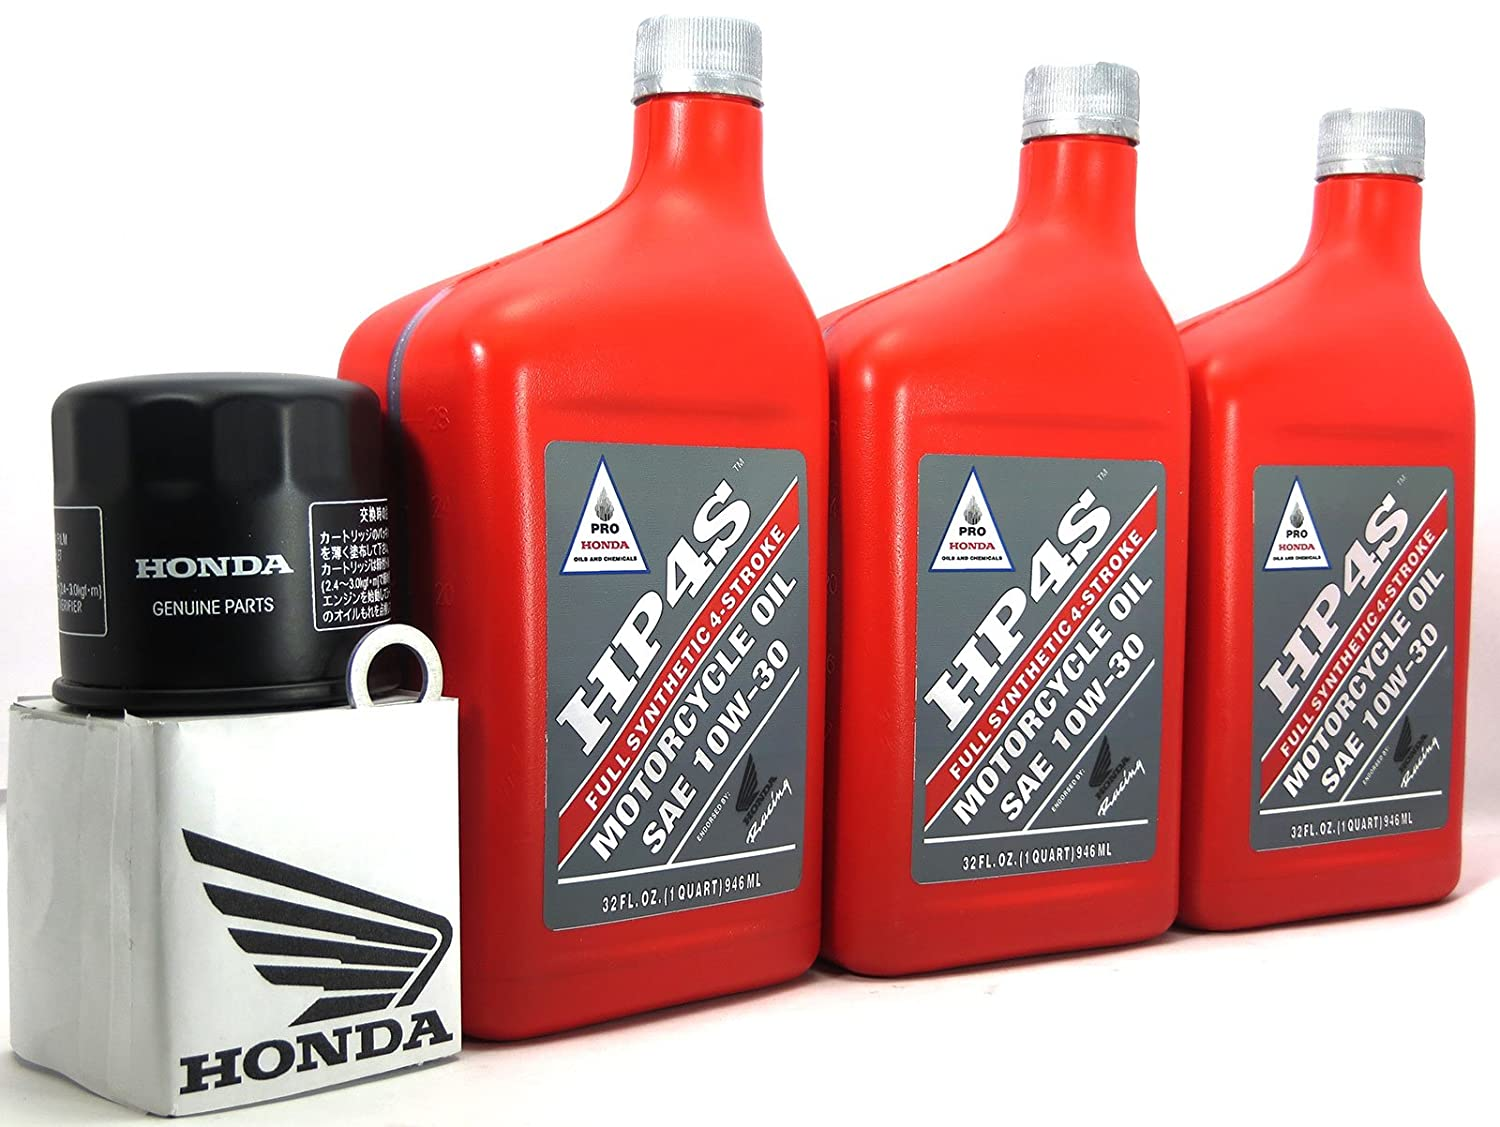 2008 HONDA HP4S CBR600RR/RA OIL CHANGE KIT